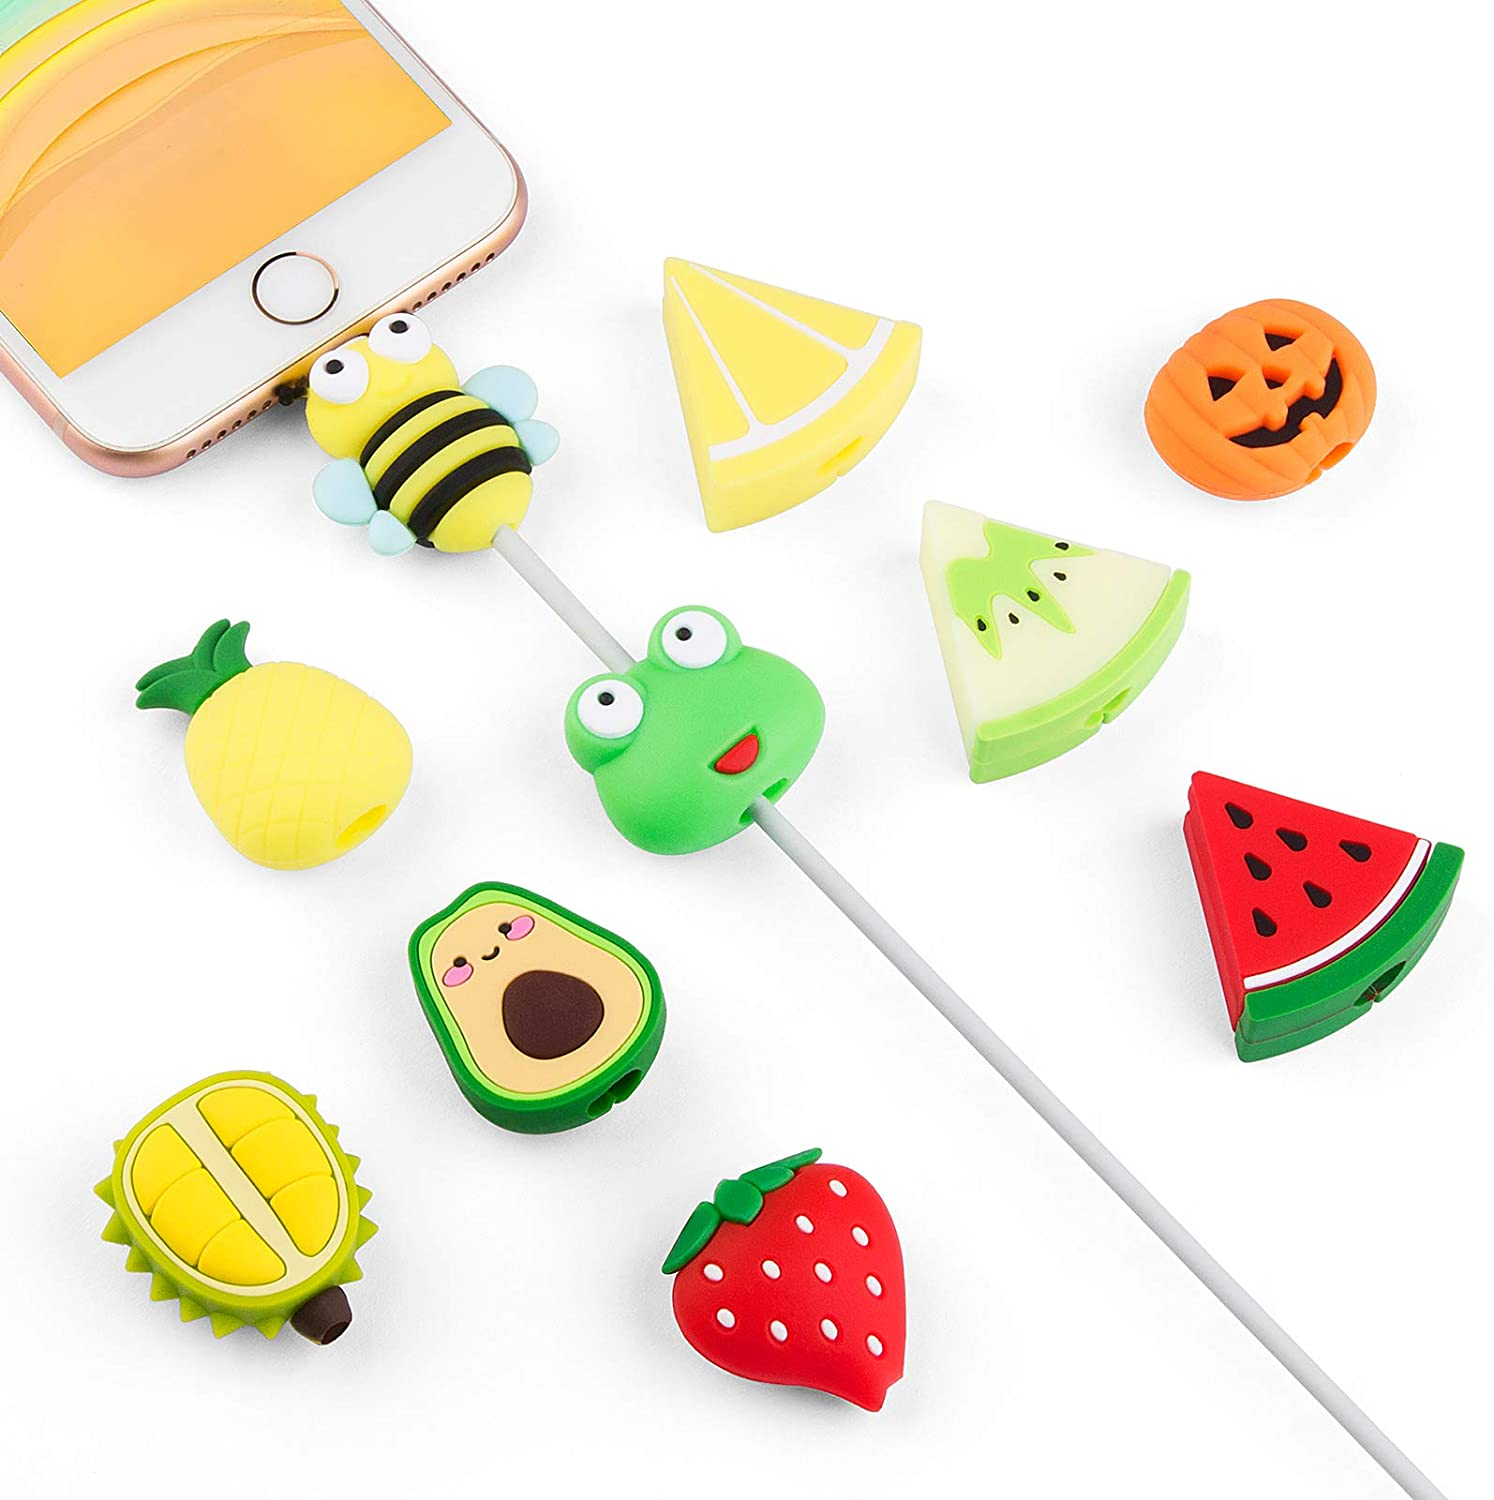 Cute Fruit Cable Protector for iPhone iPad Charger, SUNGUY 10pcs Animal Charger Protector, Cord Protector USB Cable, Cable Saver Phone Accessory